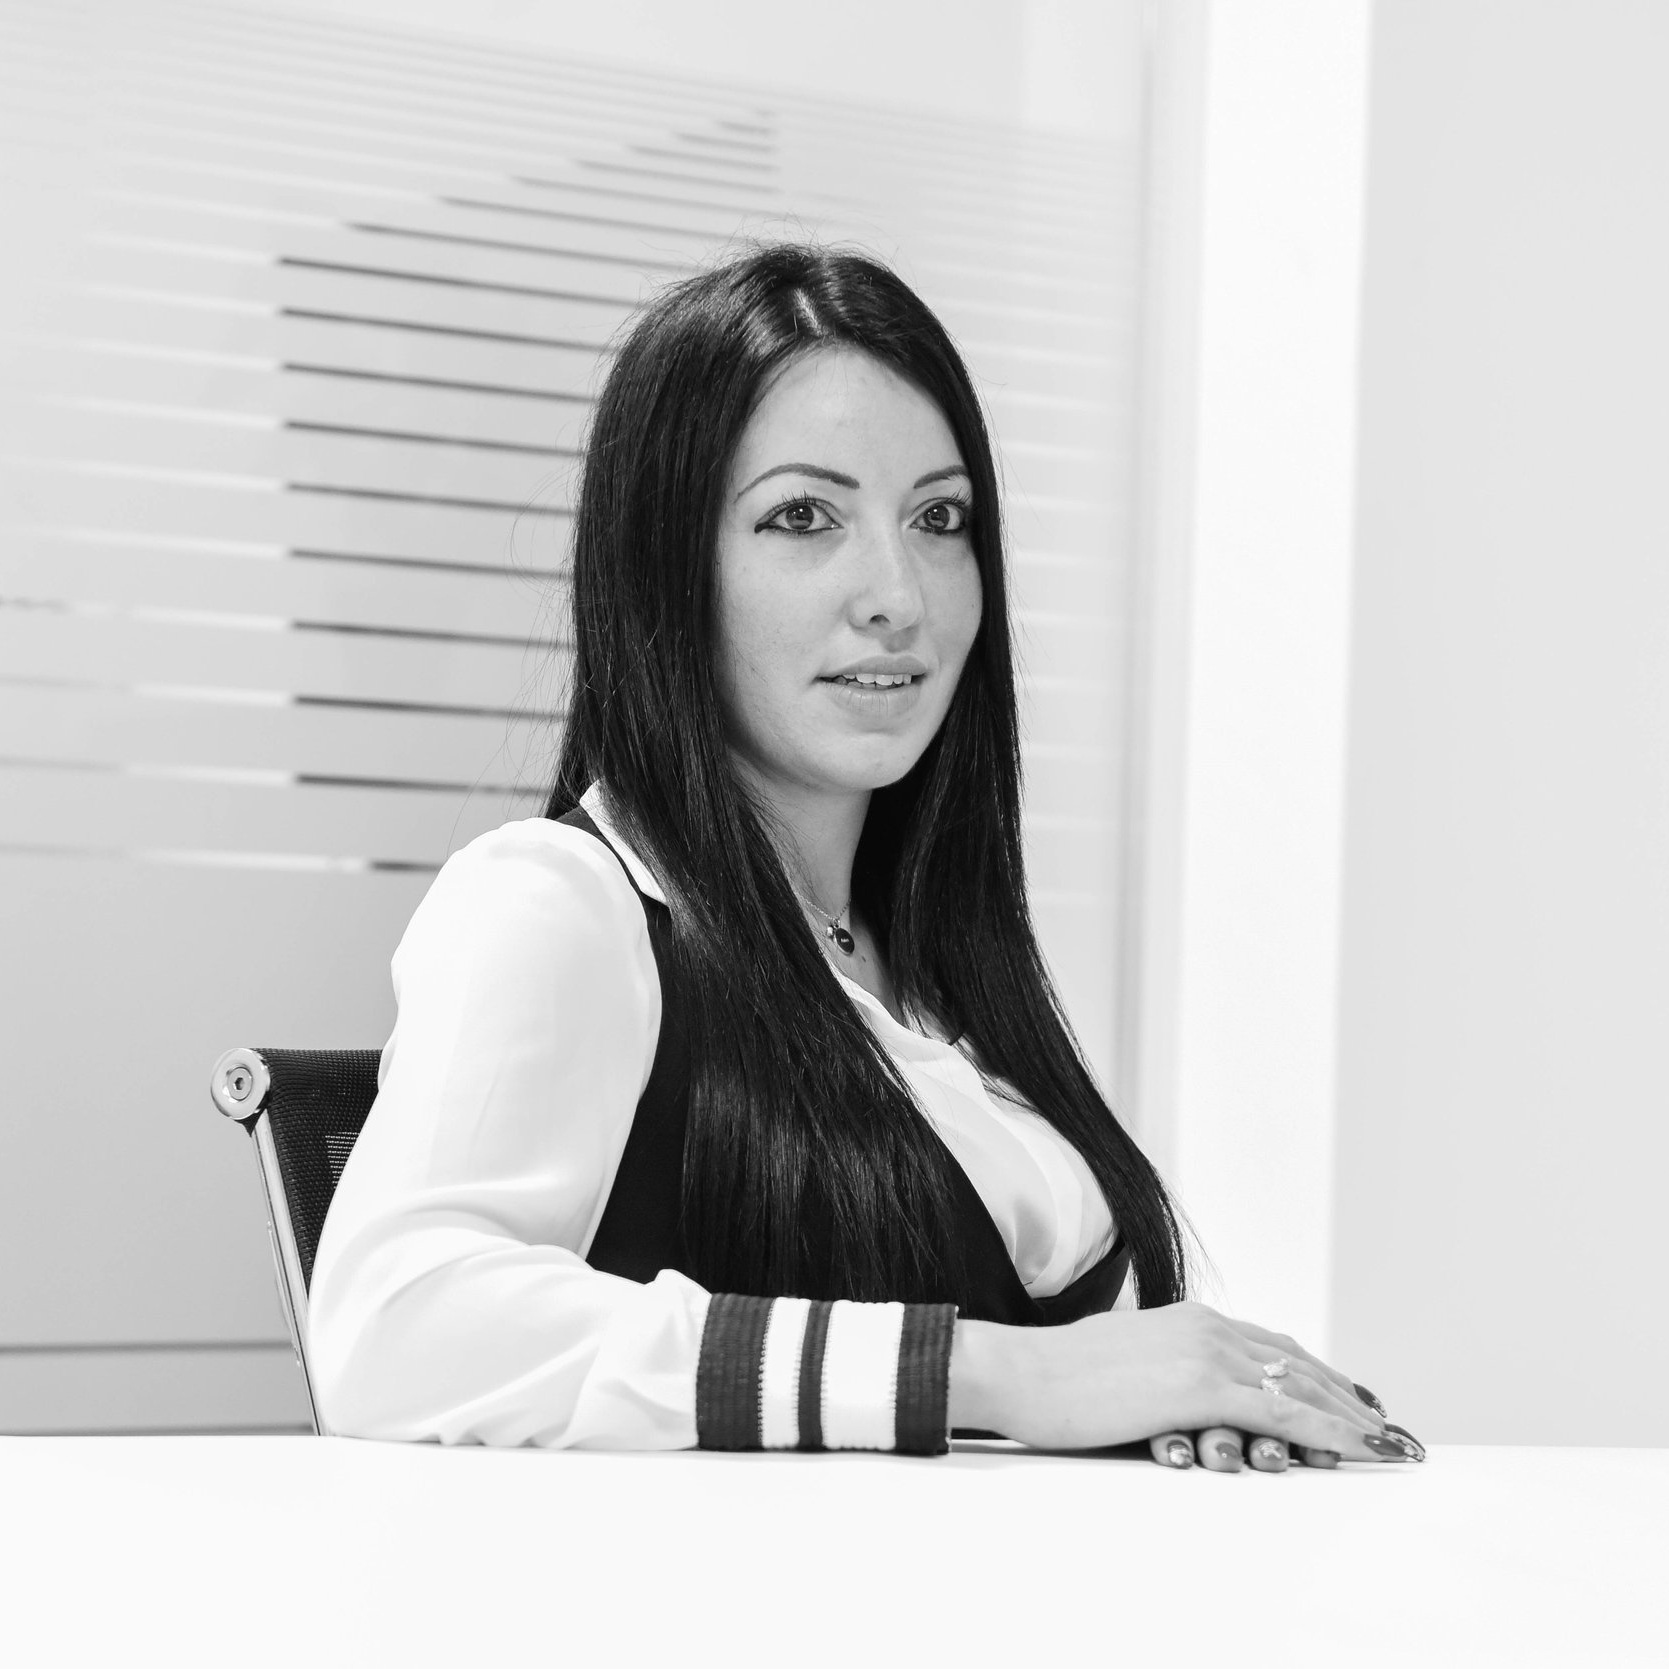 Diane Theuma joined the Hanover team in December 2017 as a financial controller, Diane is based in the Malta office.  Diane prepares the accounting for Hanover Investors Management (Malta) Limited and is responsible for the preparation of the statutory financial statements, submission of returns to the relevant authorities. She is also responsible for liaising with auditors, tax authorities and Compliance Officers.  Diane is ACCA qualified and is a fellow member of the Association of Chartered Certified Accountants (ACCA) and the Malta Institute of Accountants (MIA).